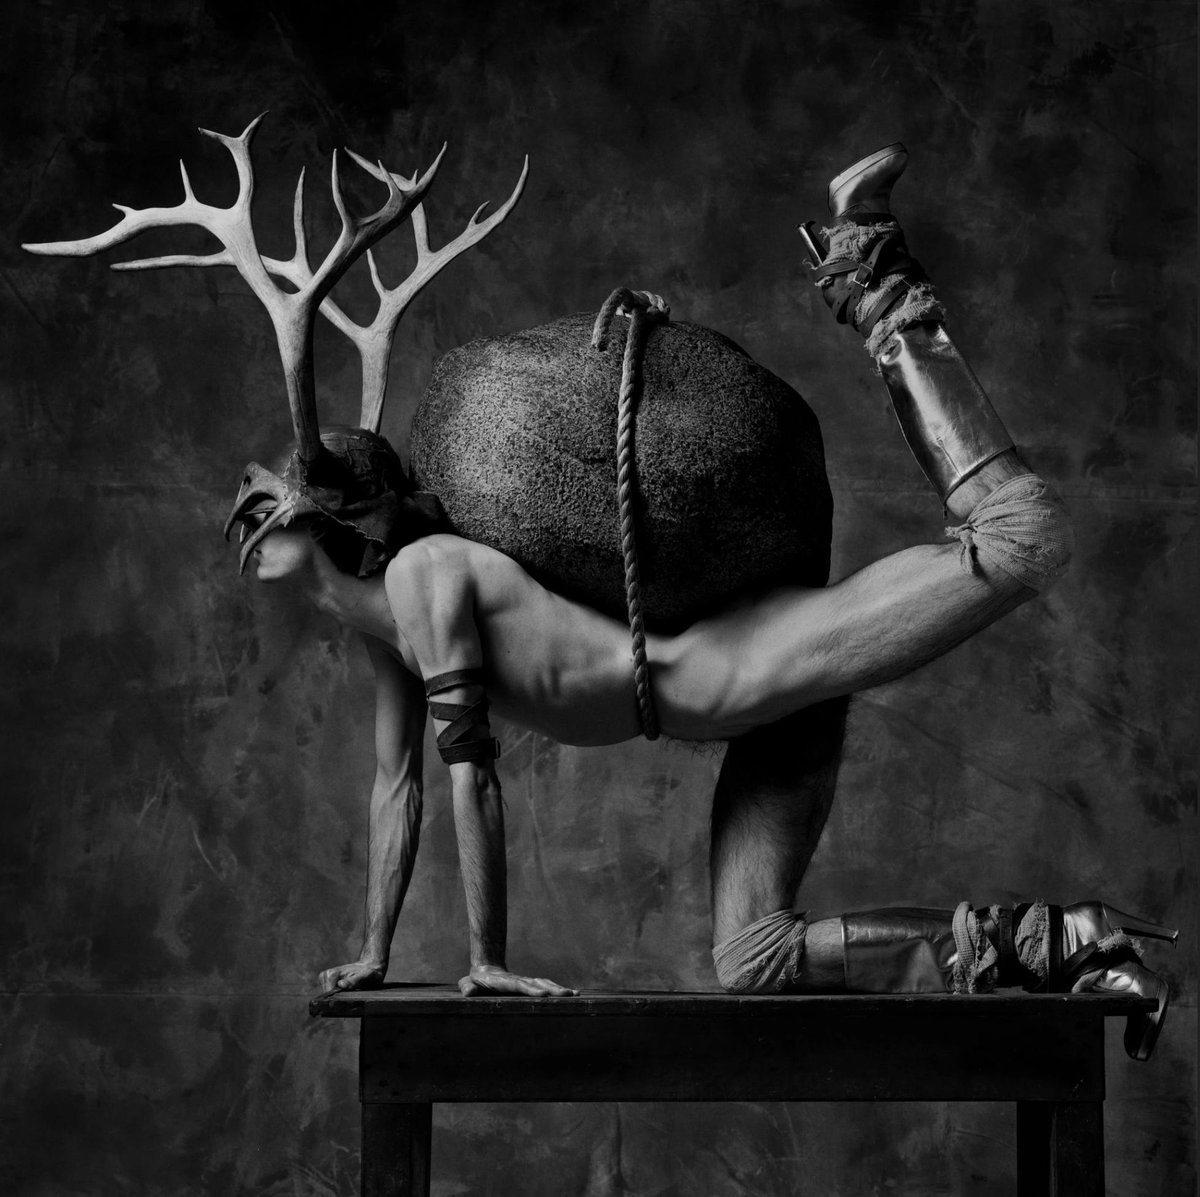 A Photographer Who Makes You Ask, 'What Has Happened Here?': Erwin Olaf's photos have the gloss of fashion shots and a haunting undercurrent that makes you long for more context. As he turns 60, three museums will present his work. Via @nytimes http://ht.ly/LeE530nGWBw